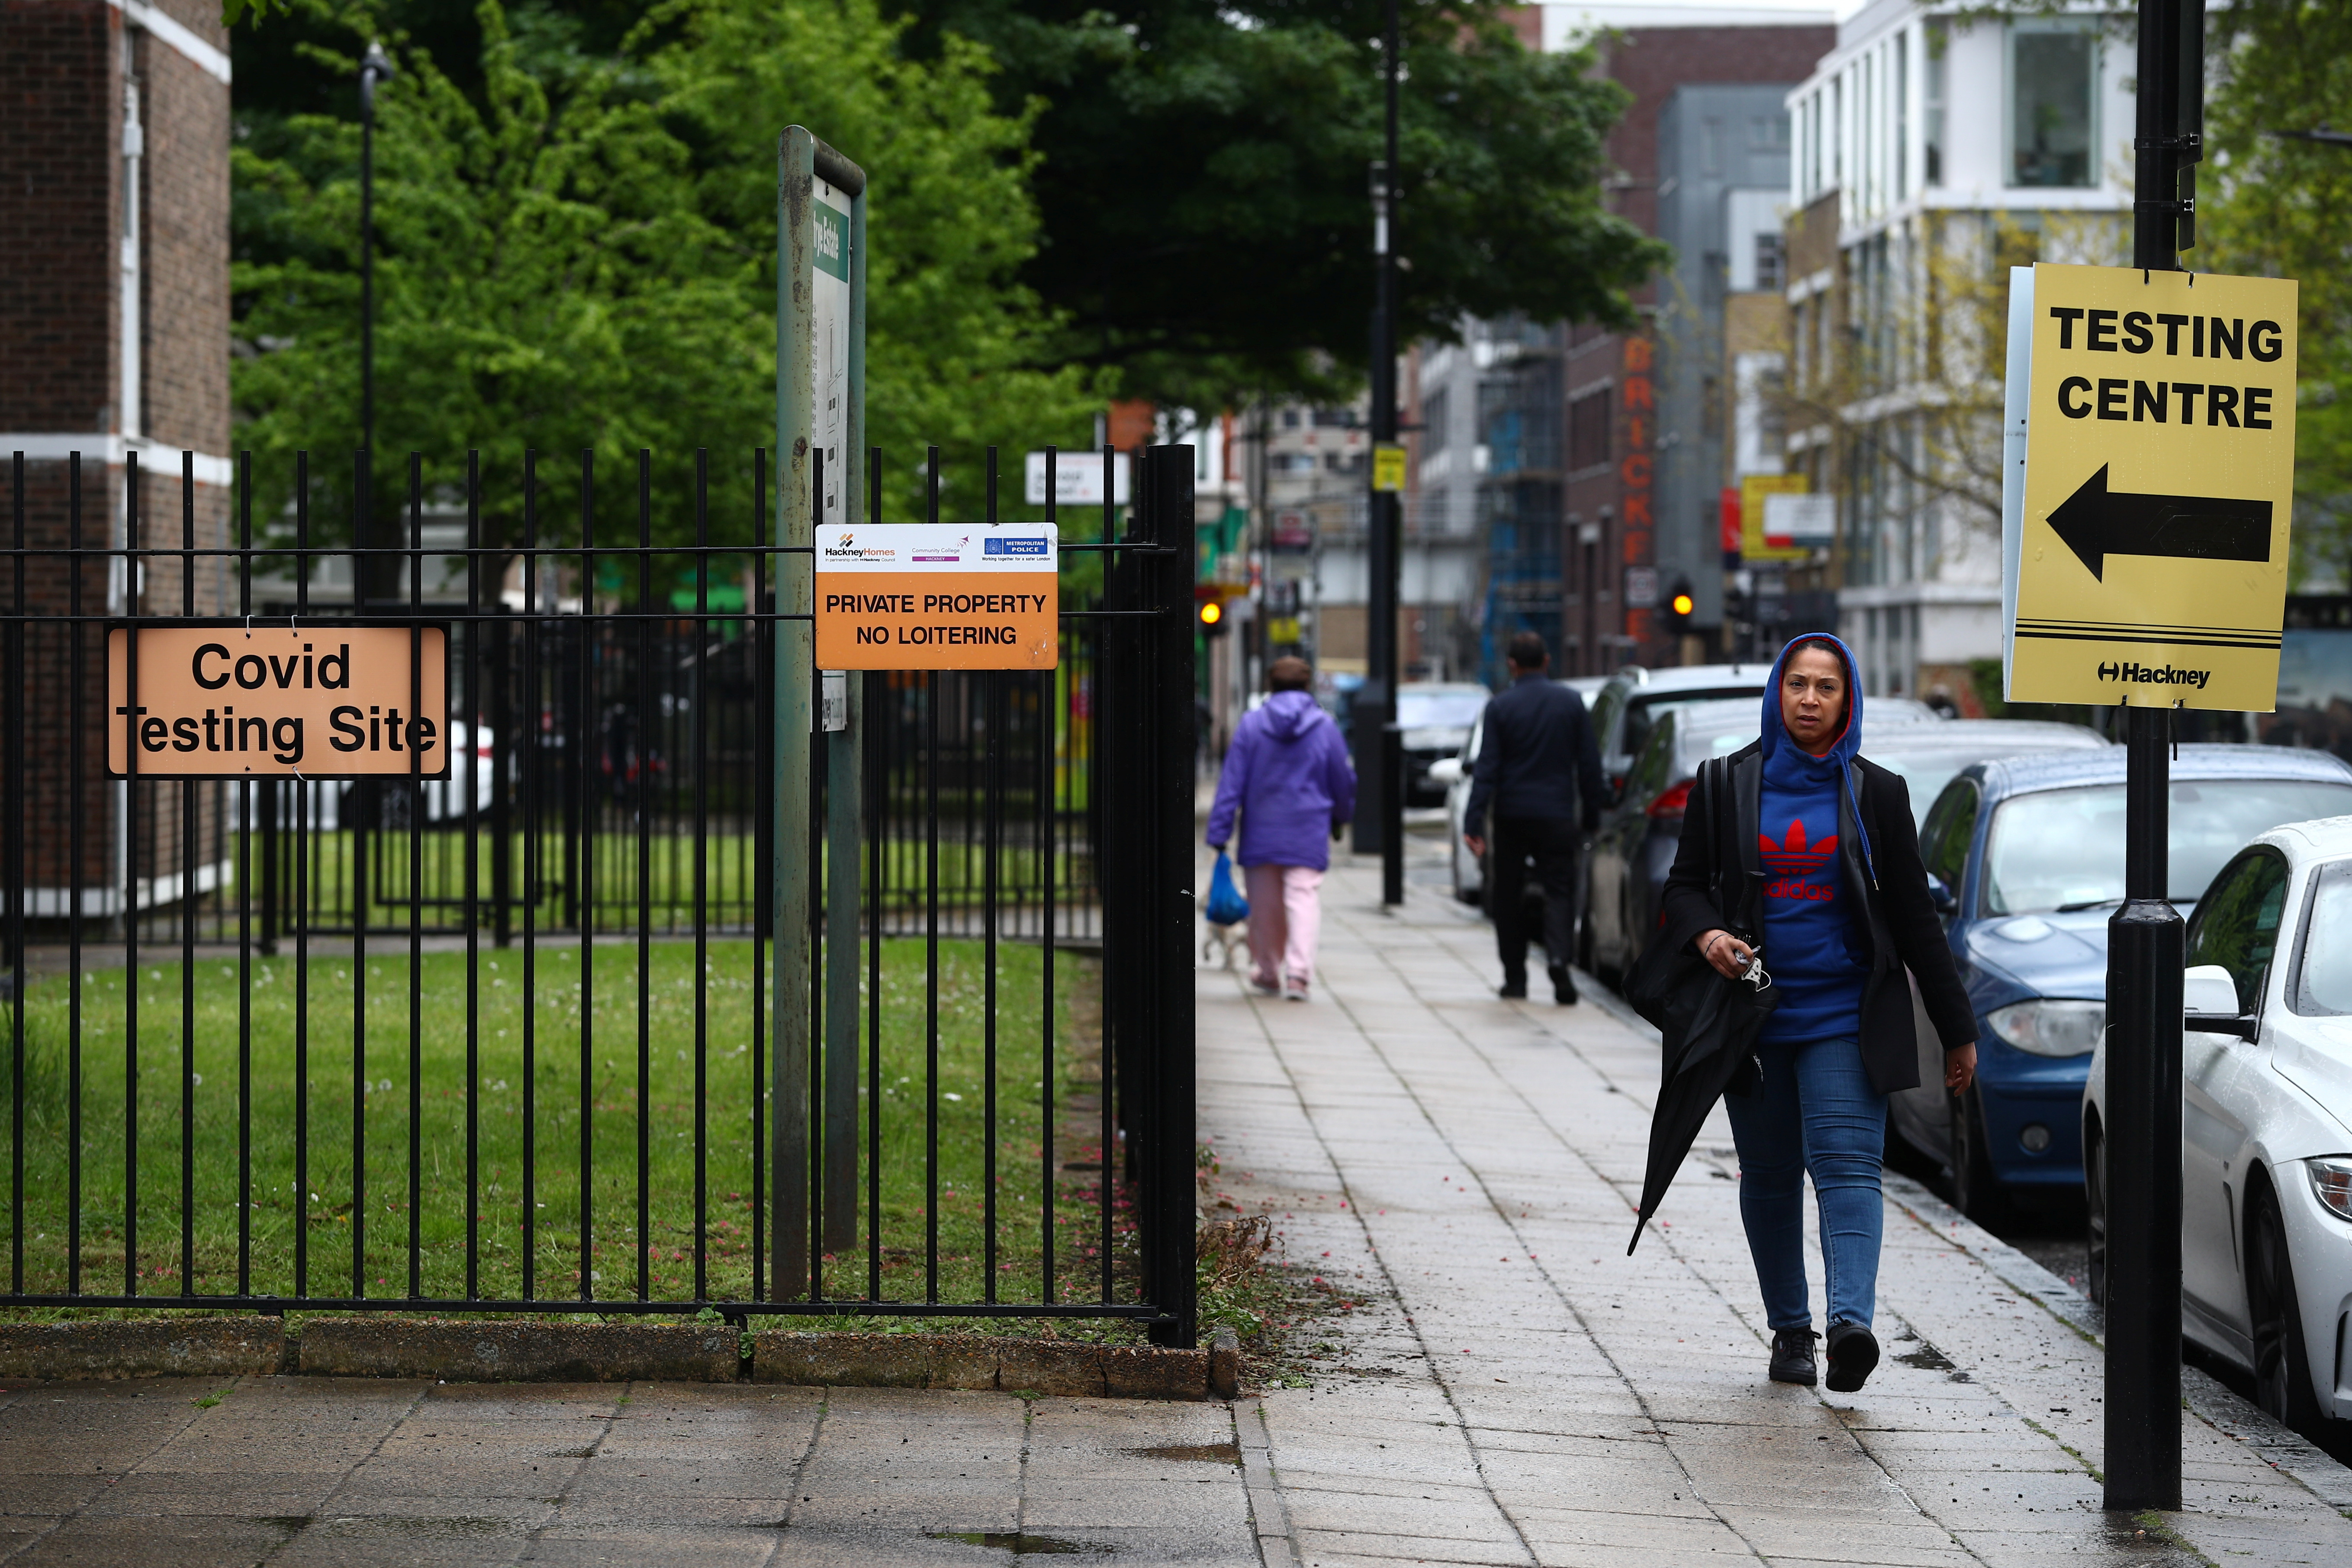 A person walks past a testing centre amid the outbreak of the coronavirus disease (COVID-19), in the Shoreditch area of London, Britain, 18 May 2021. REUTERS/Hannah McKay/Files